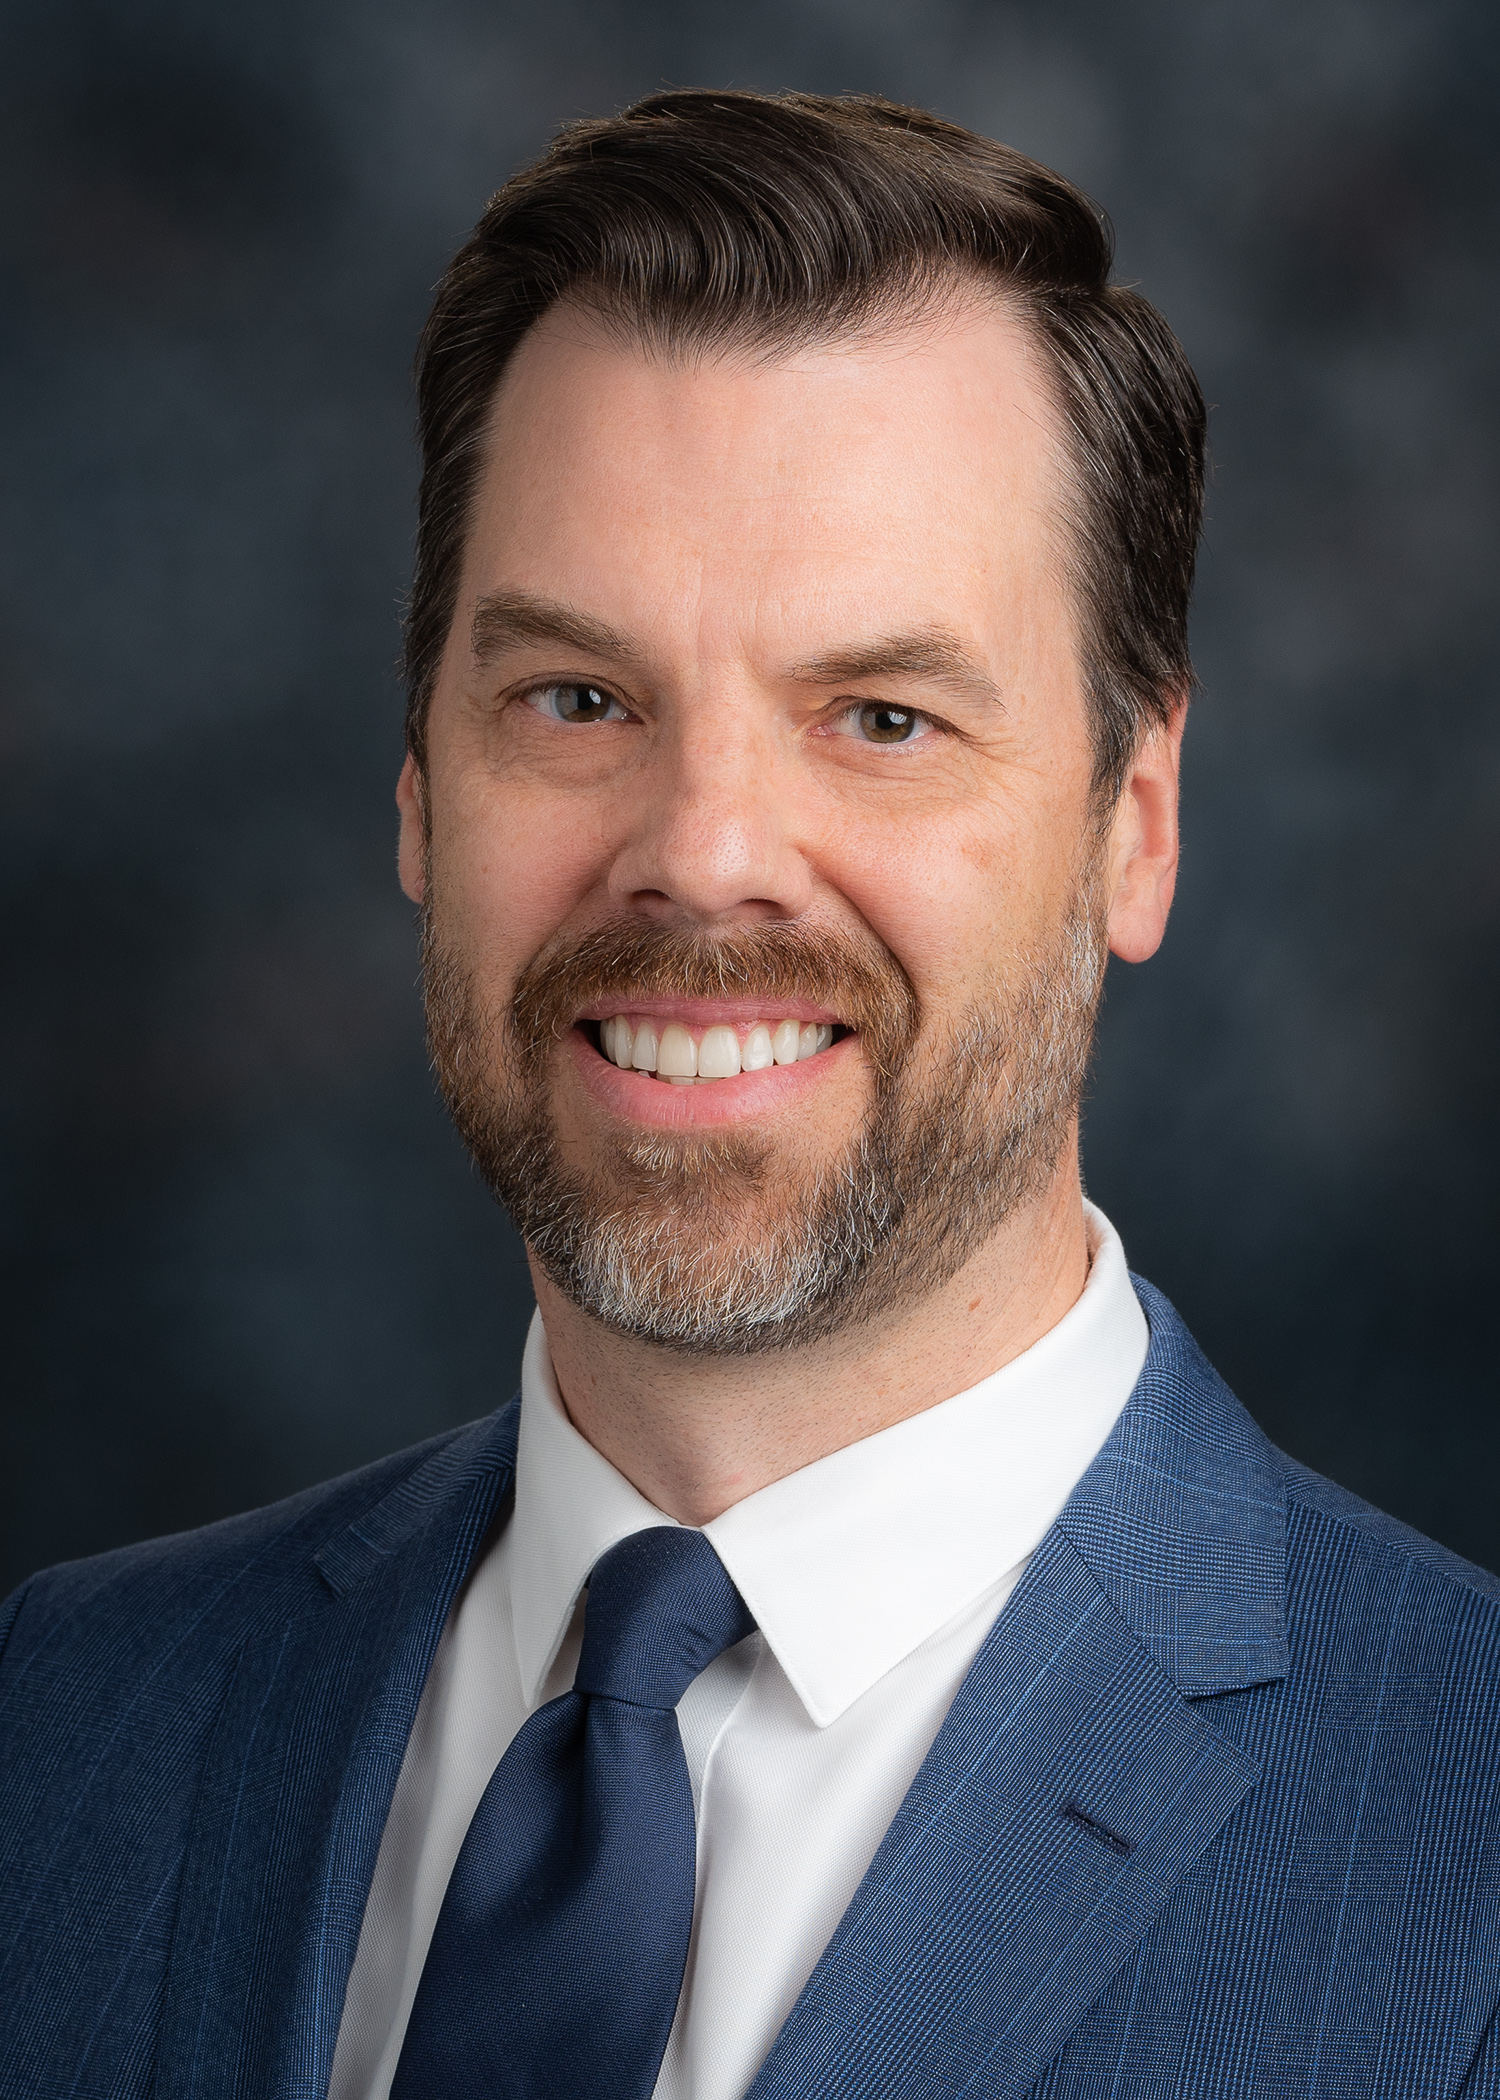 Dr. Gregory Olson